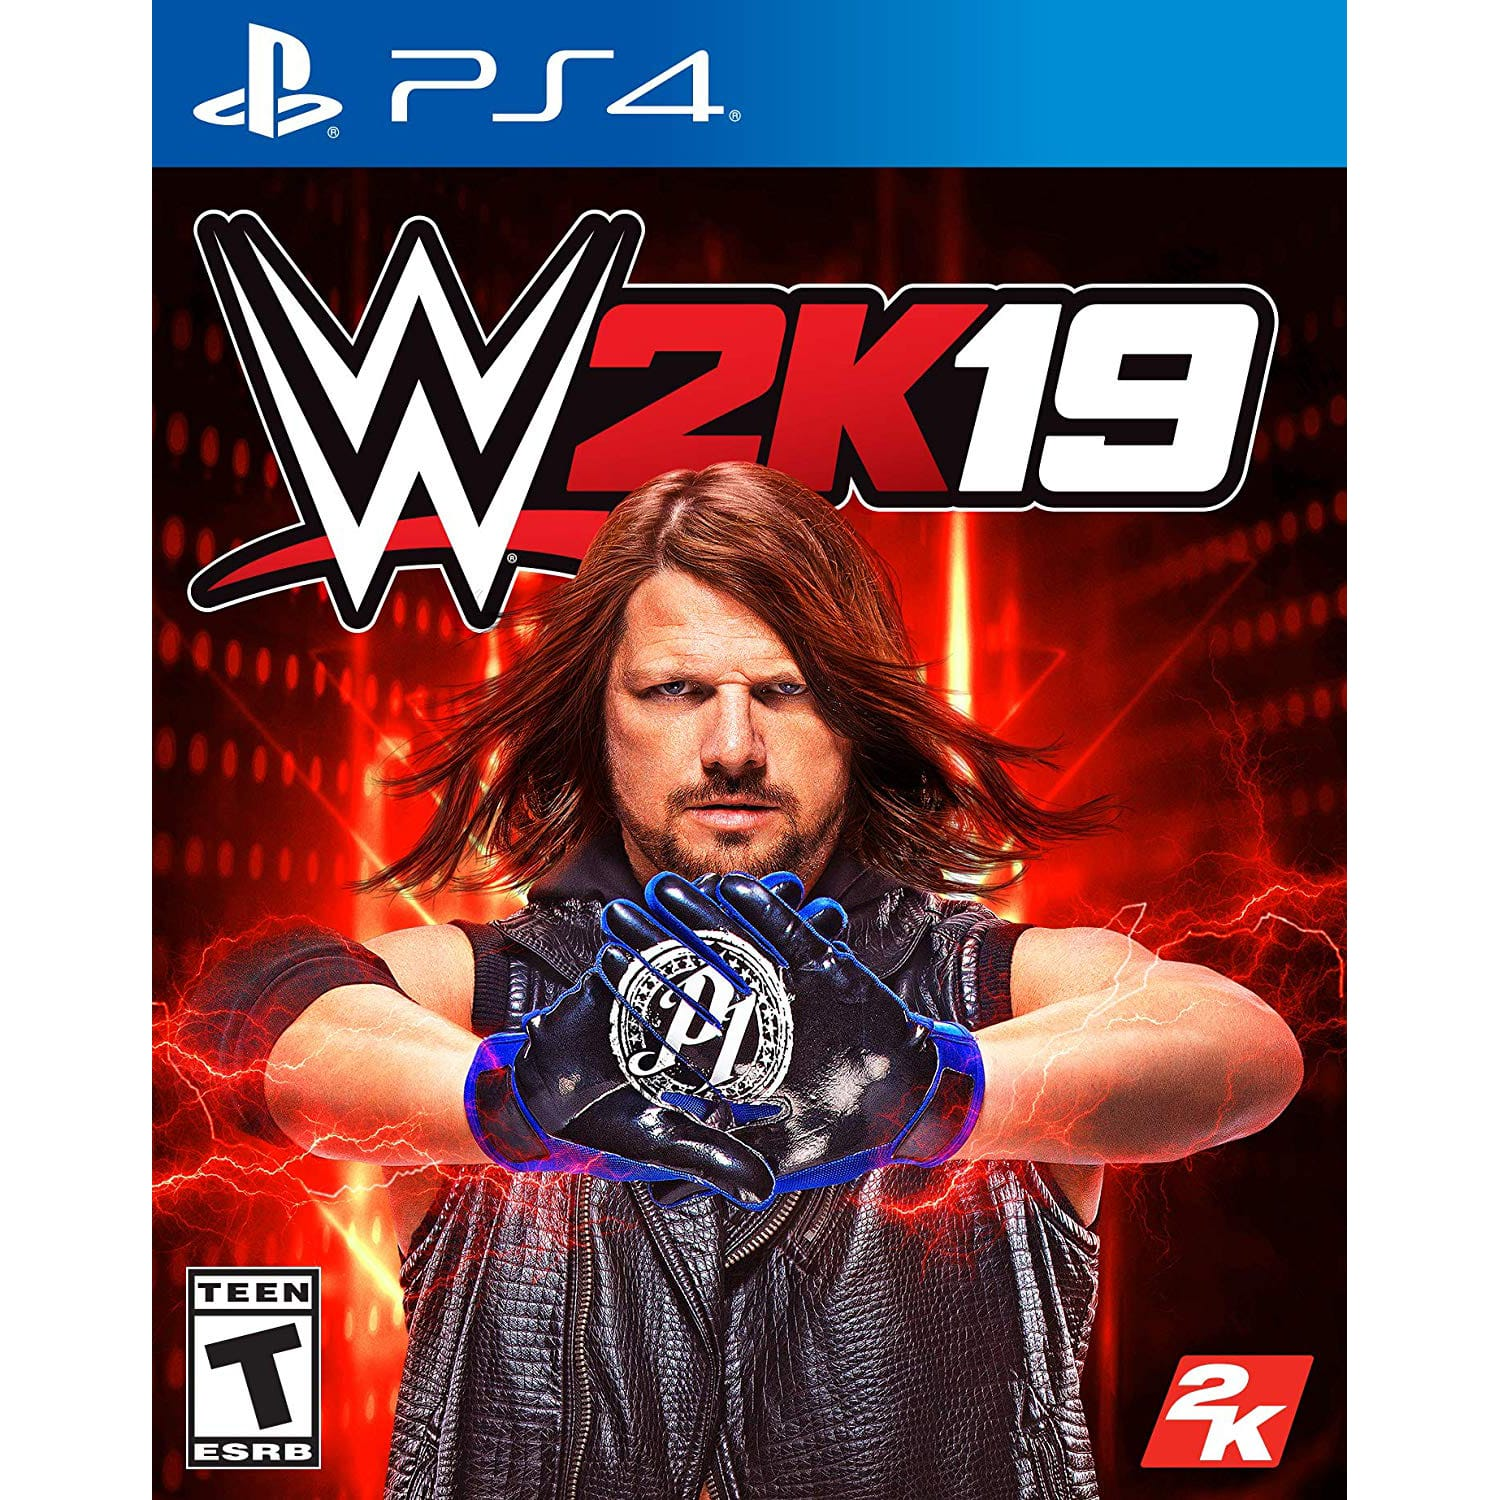 WWE 2K19 Video Game Standard Edition (Playstation or Xbox One) - $47.99 + FS